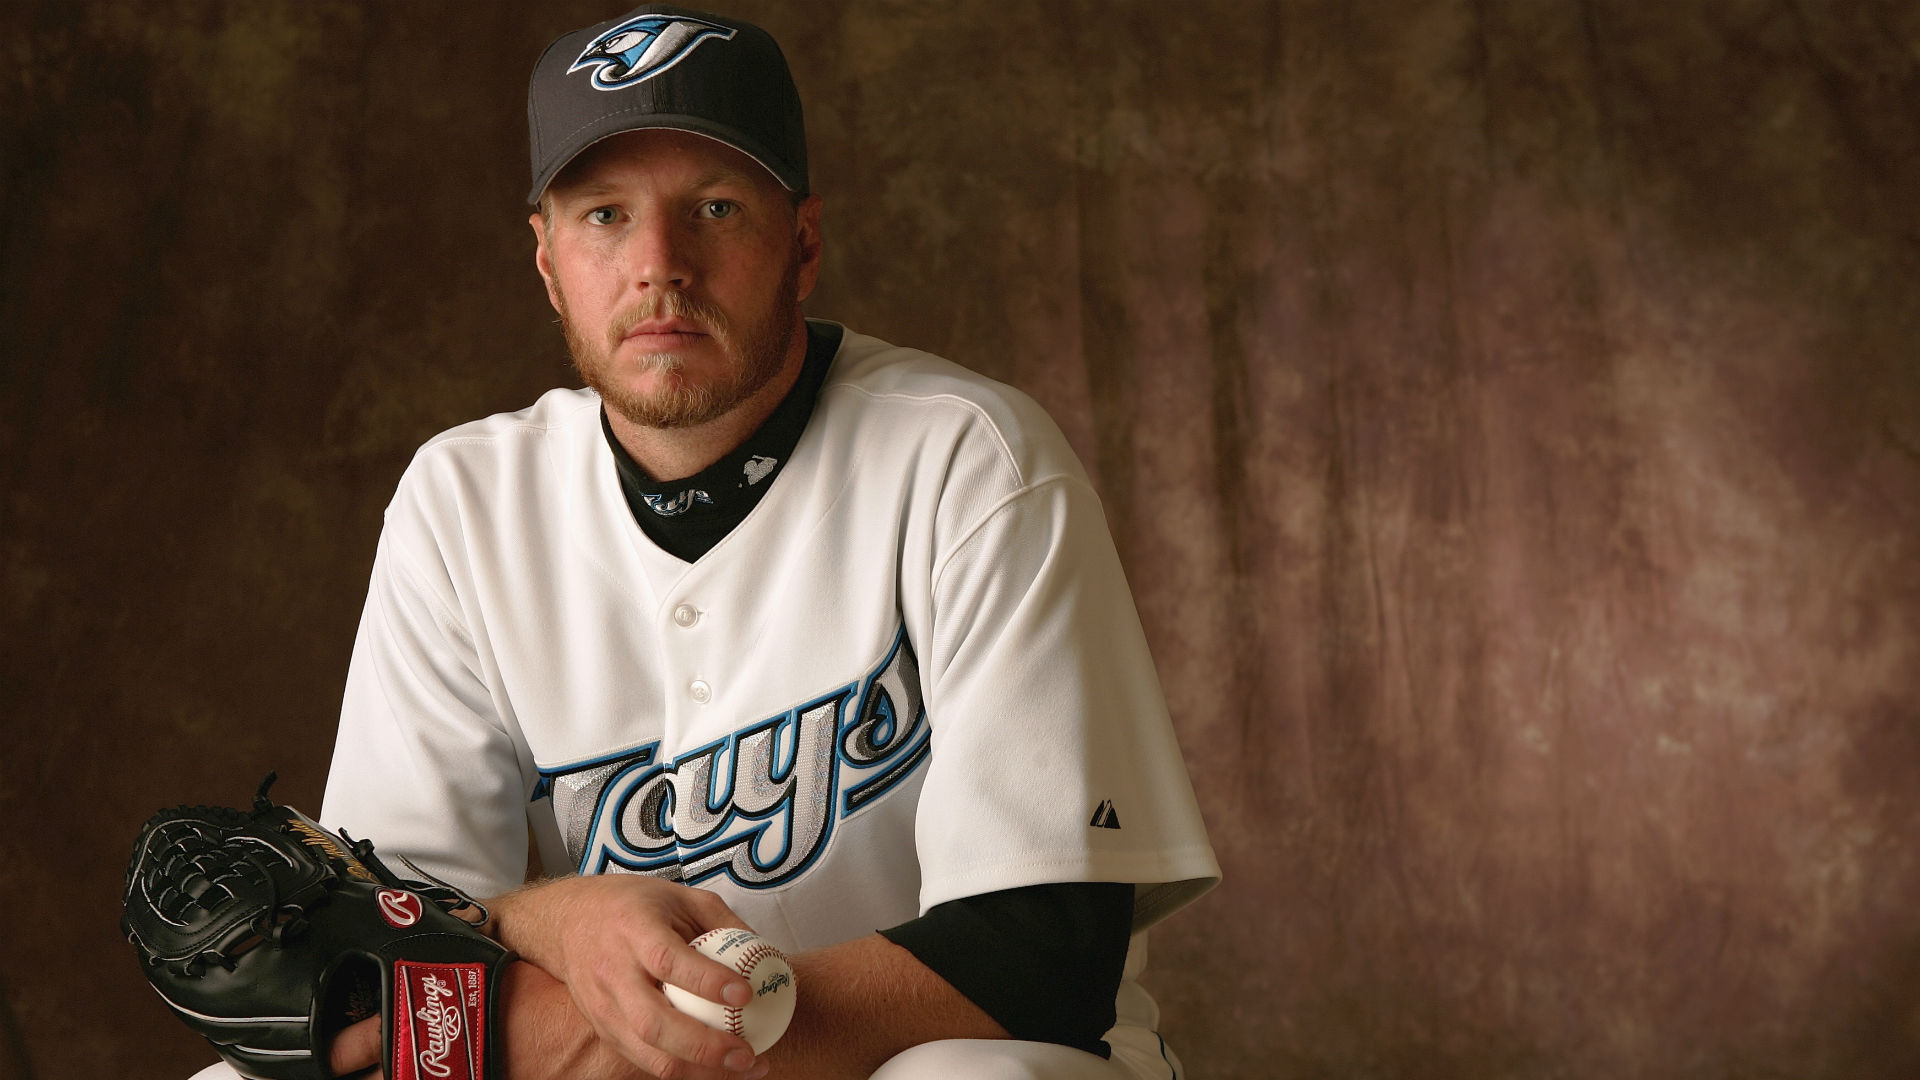 Blue Jays to honor Roy Halladay with opening day pregame ceremony